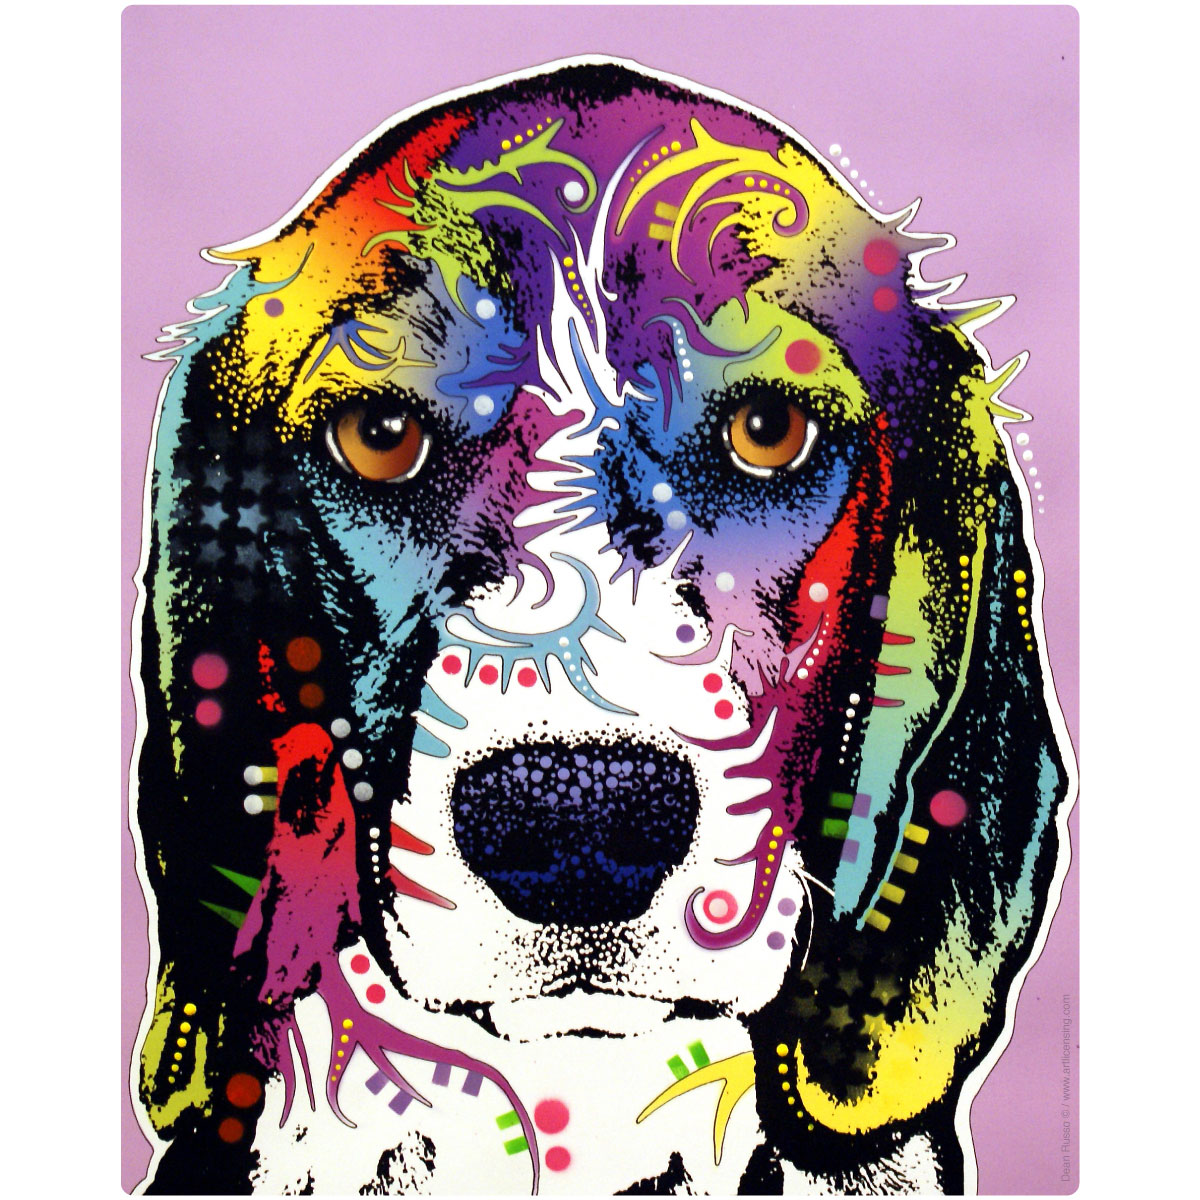 beagle dog dean russo pop art wall decal removable wall art - Dean Russo